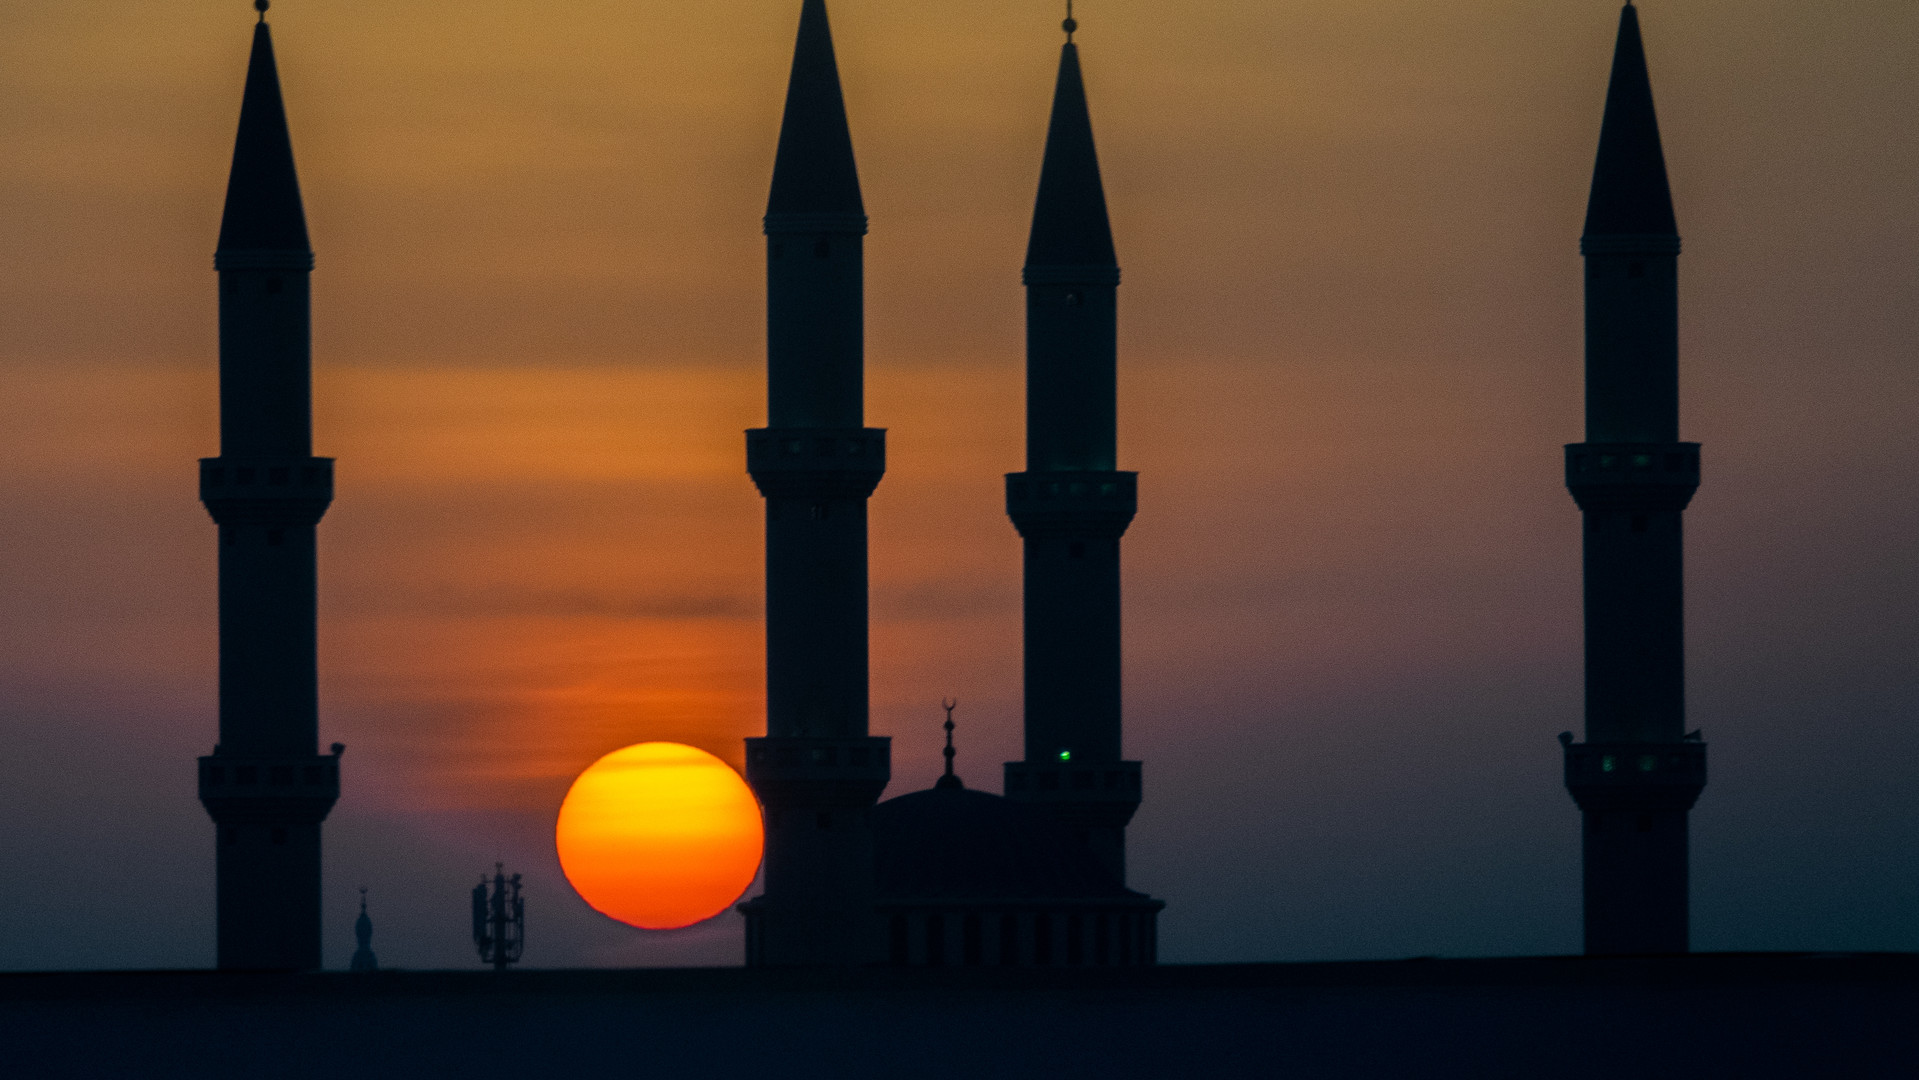 Sunset at the Mosque